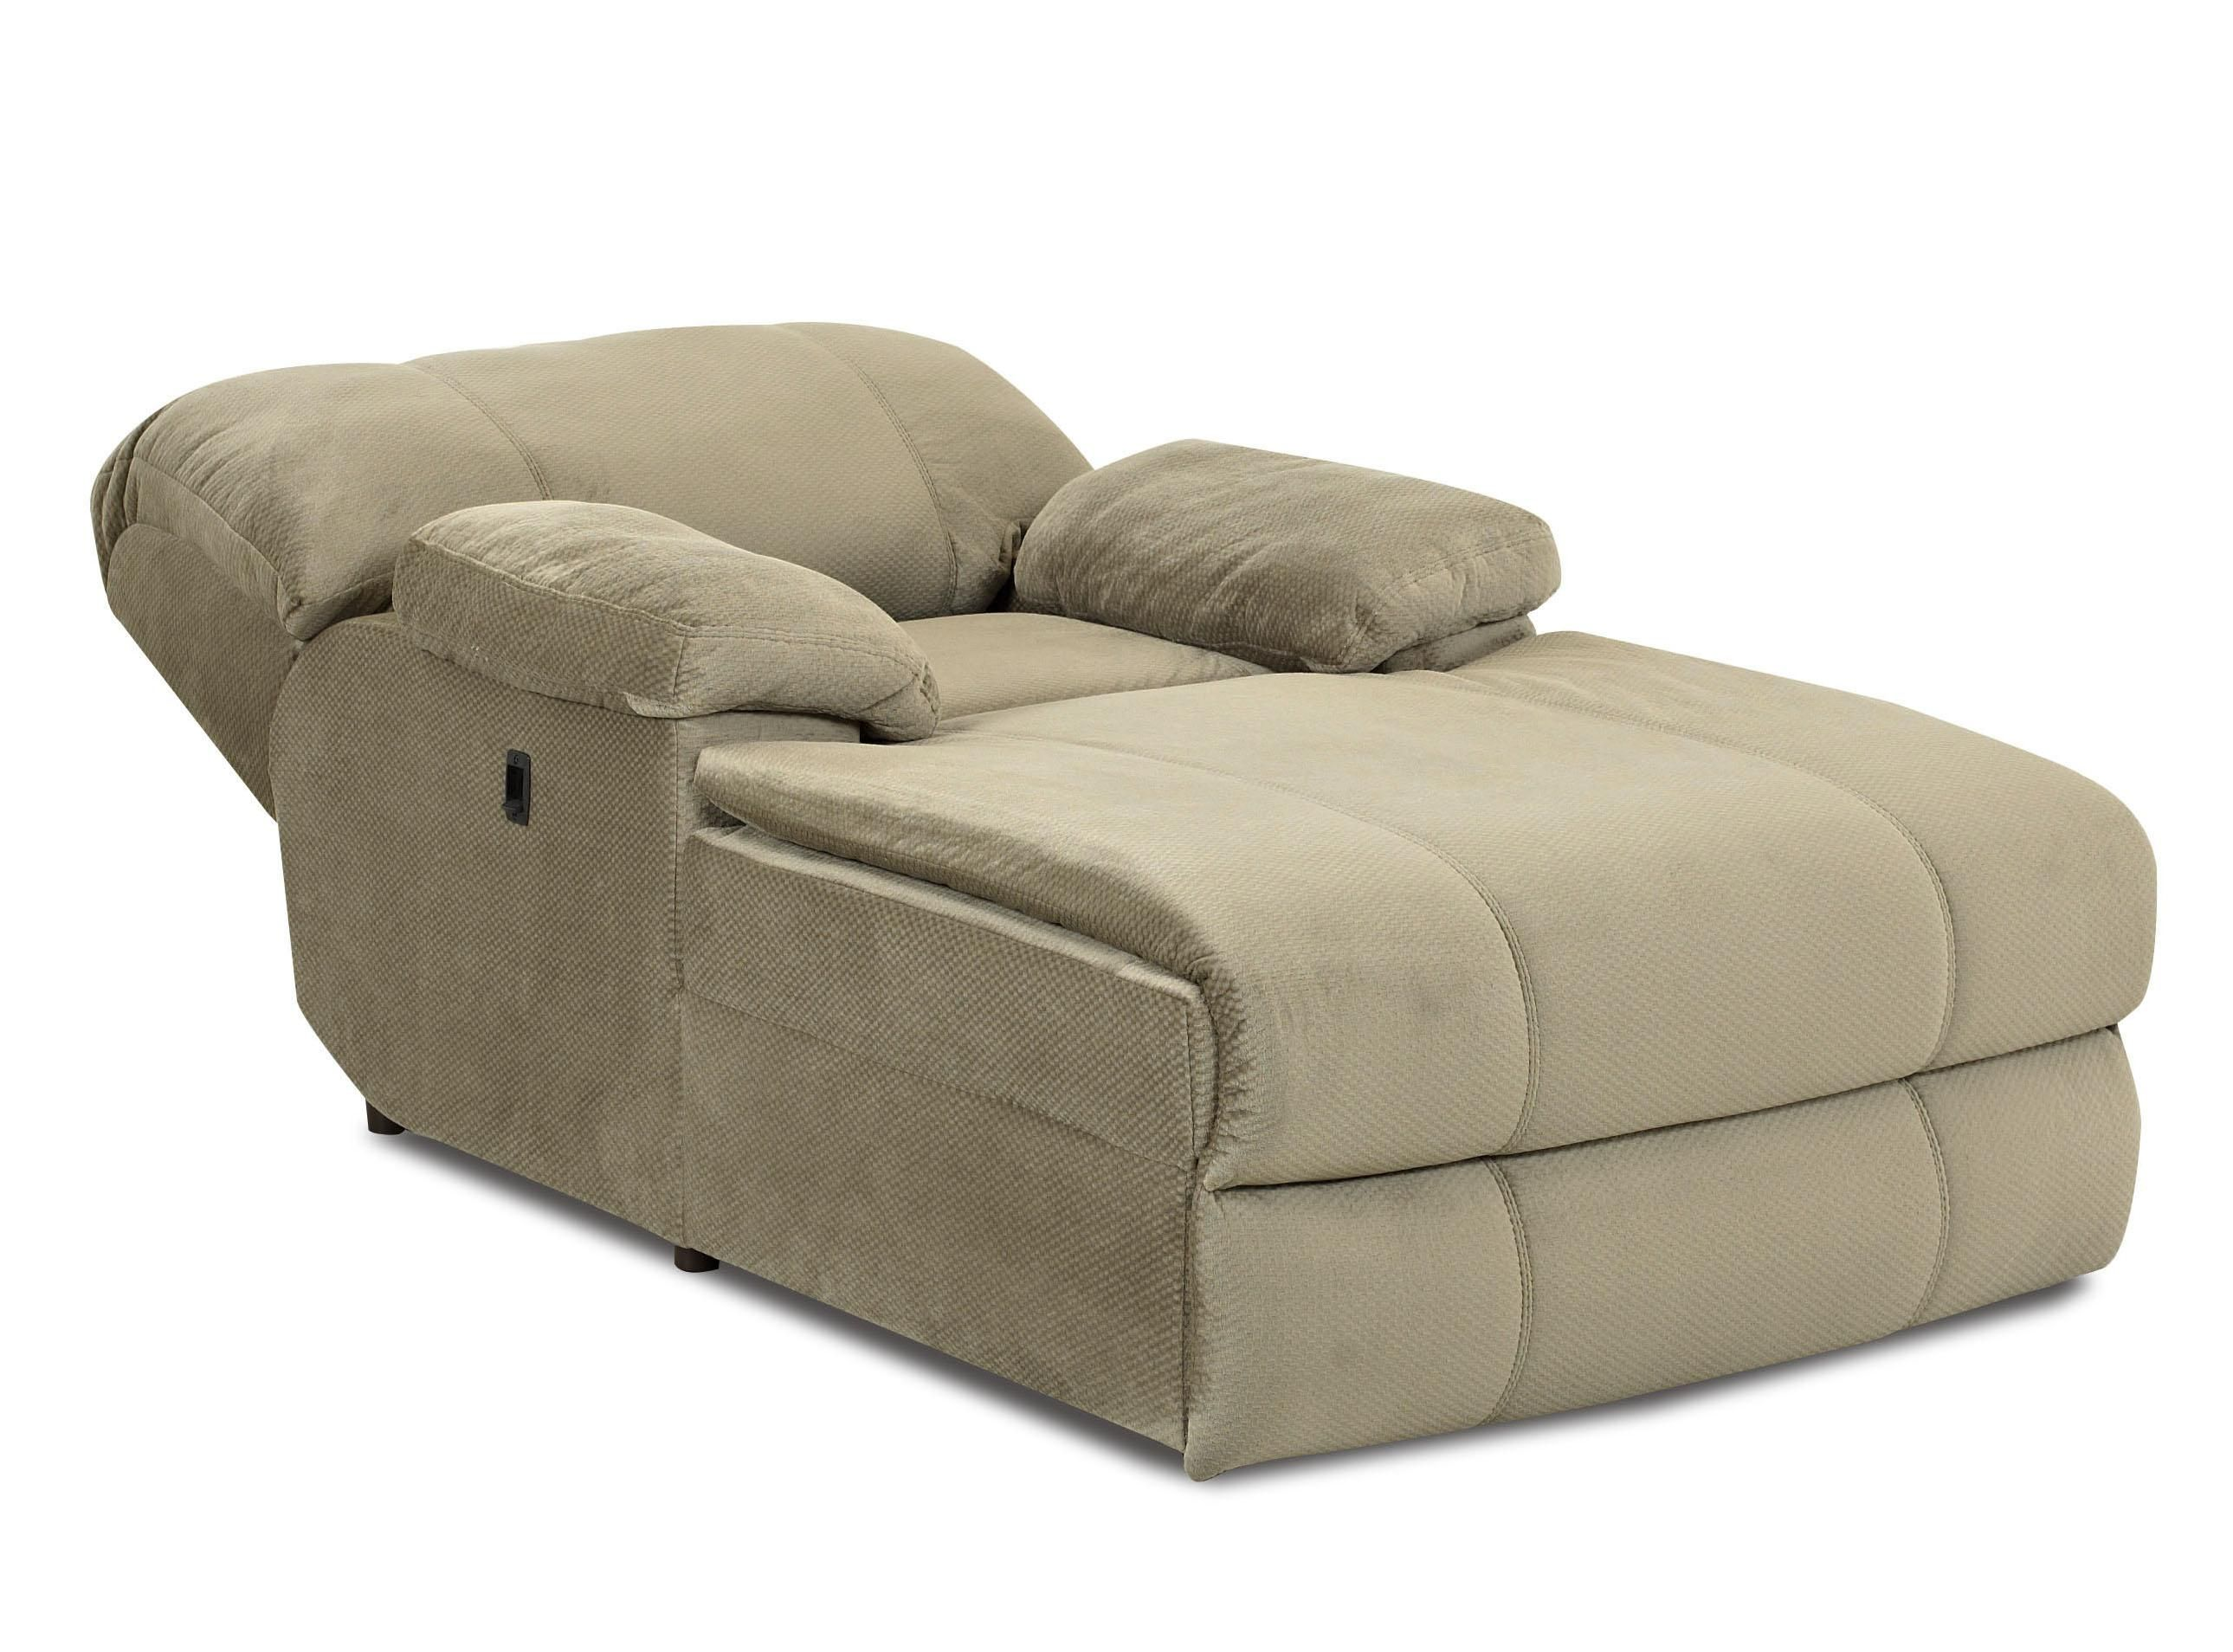 Chaise Lounge Chairs Indoor Indoor Oversized Chaise Lounge Kensington Reclining